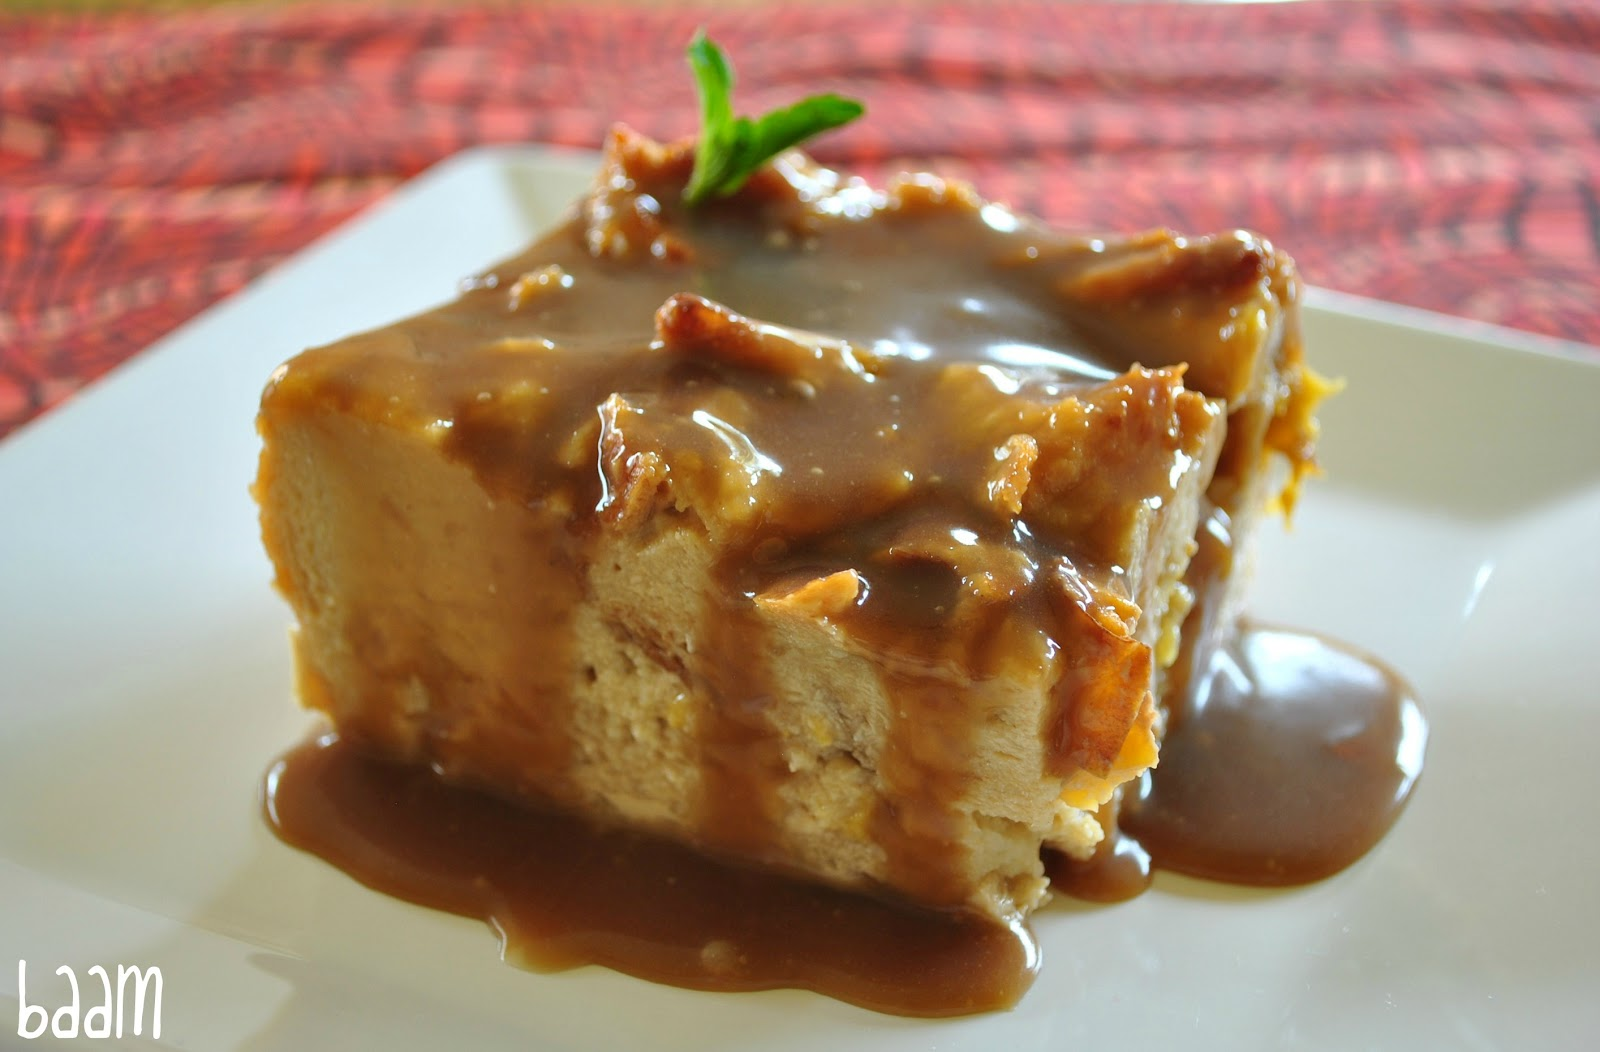 Beti Vanilla: Peach and Bourbon Bread Pudding